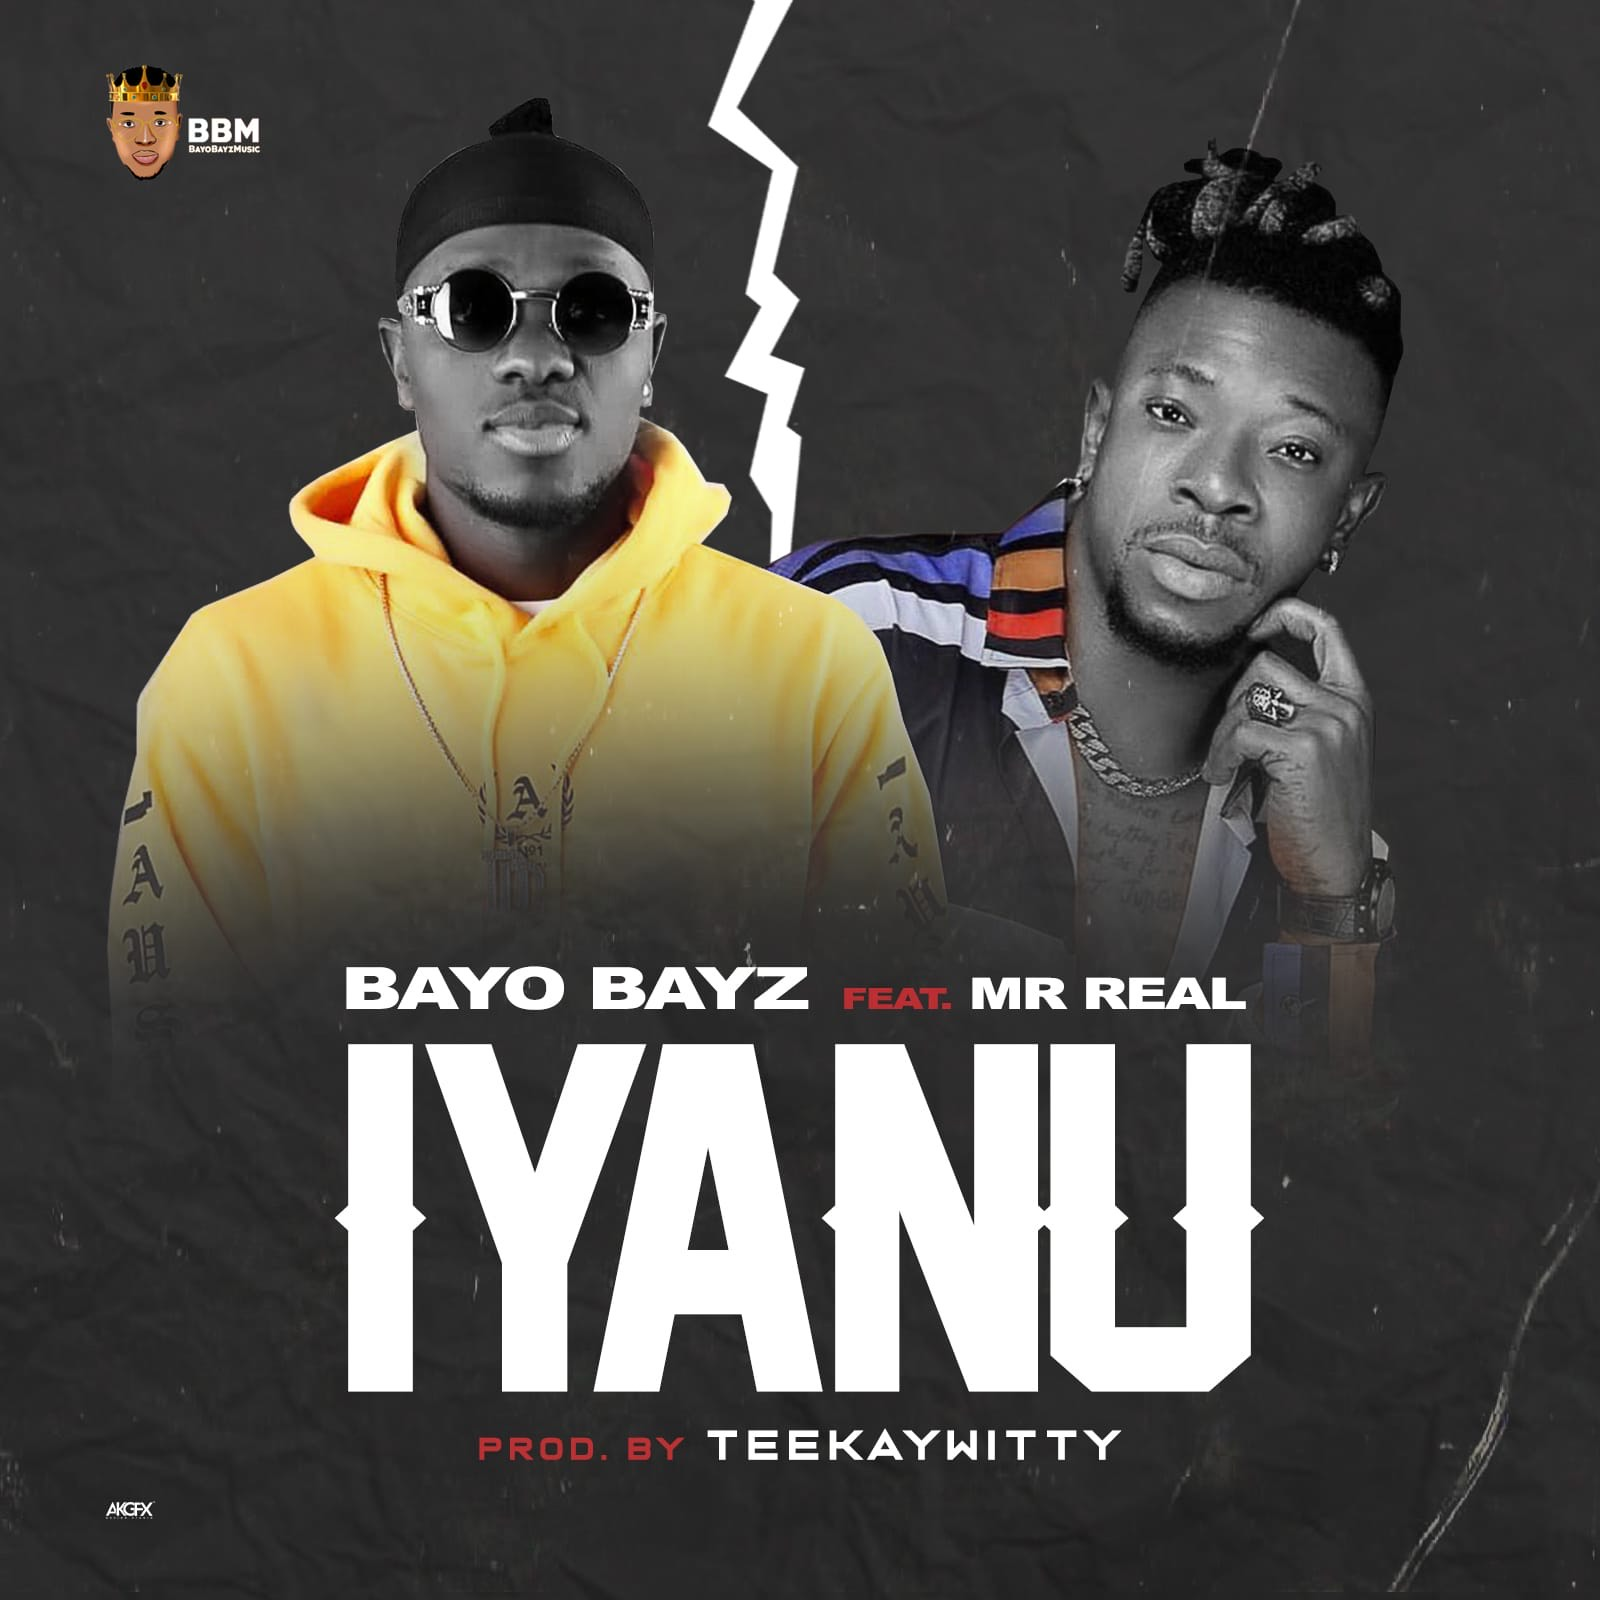 Bayo Bayz ft. Mr Real – Iyanu (Prod. by Teekaywitty)